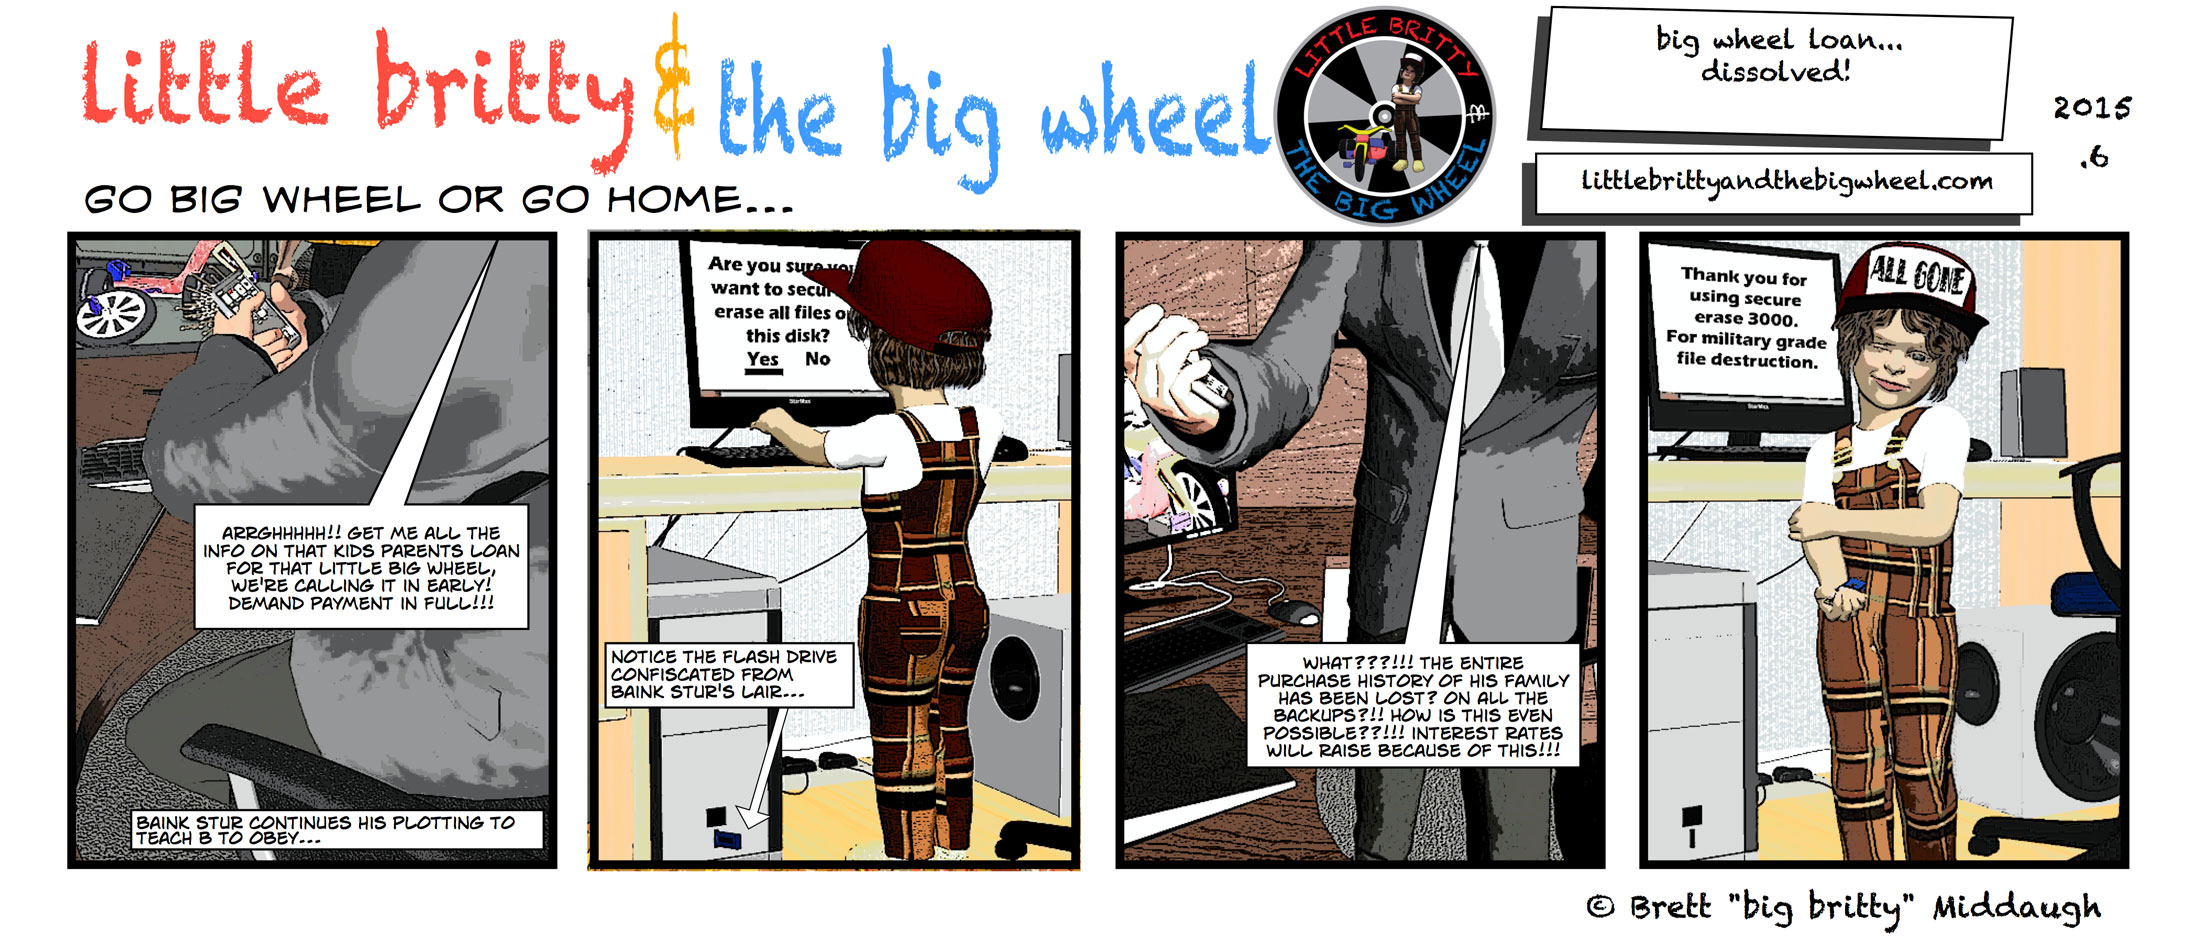 big wheel loan…dissolved #58